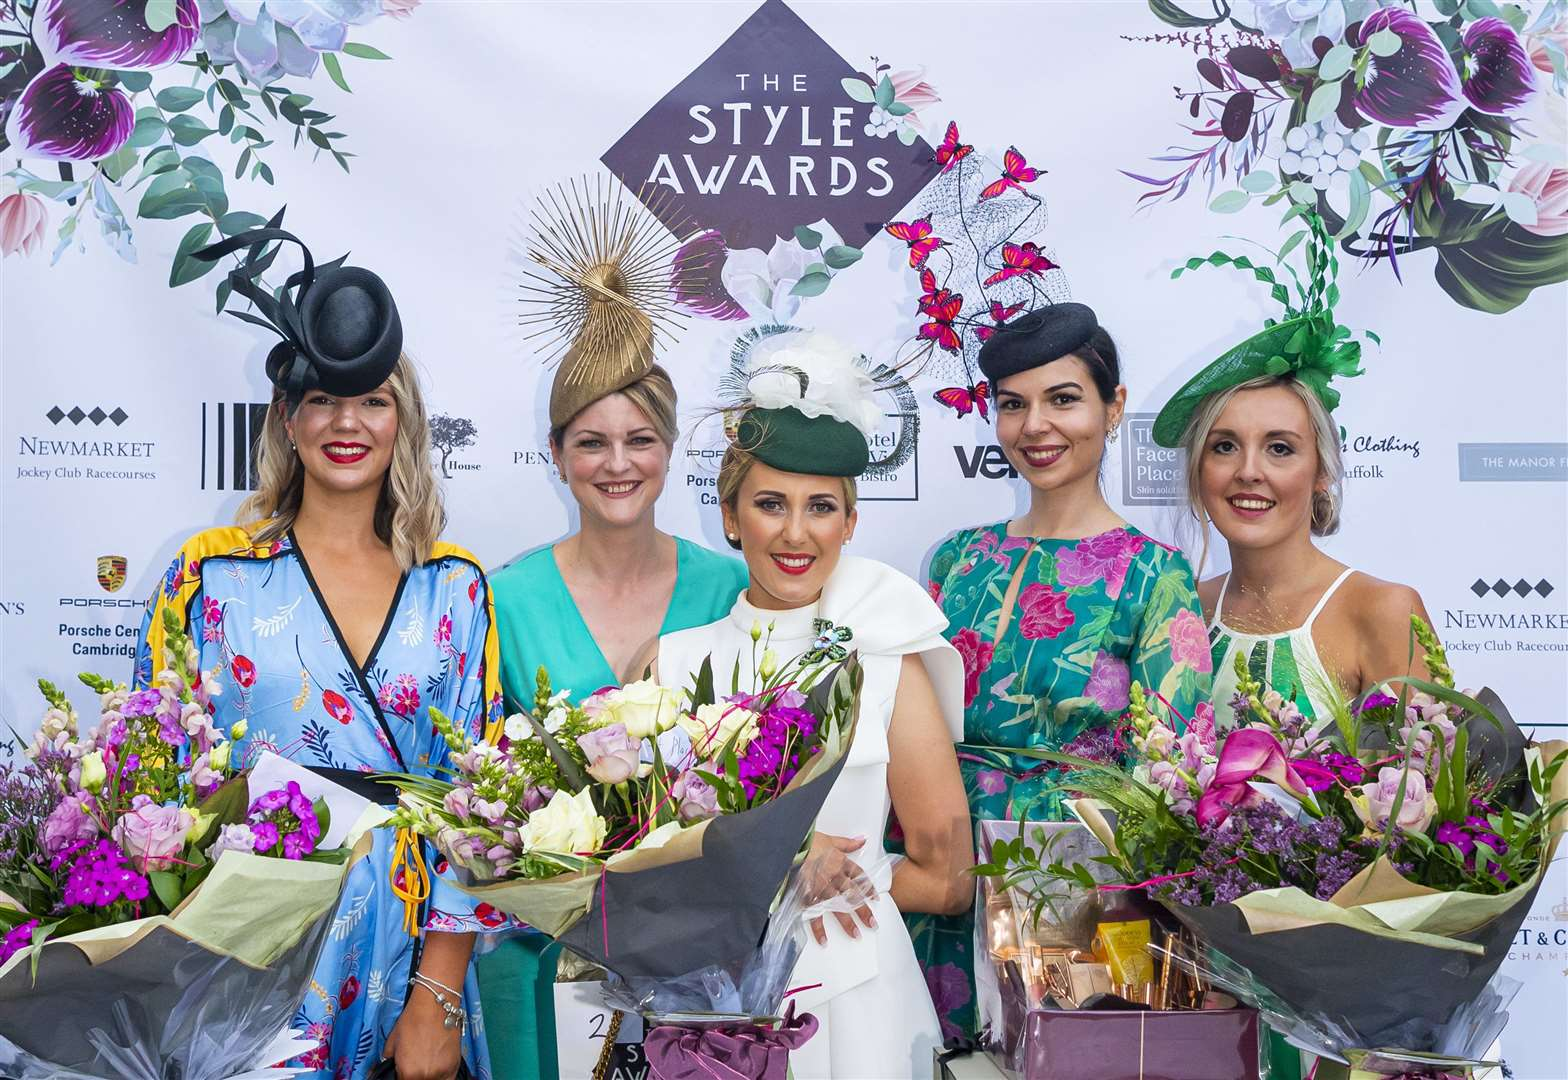 Gallery: Stunning outfits light up Ladies Day at Newmarket